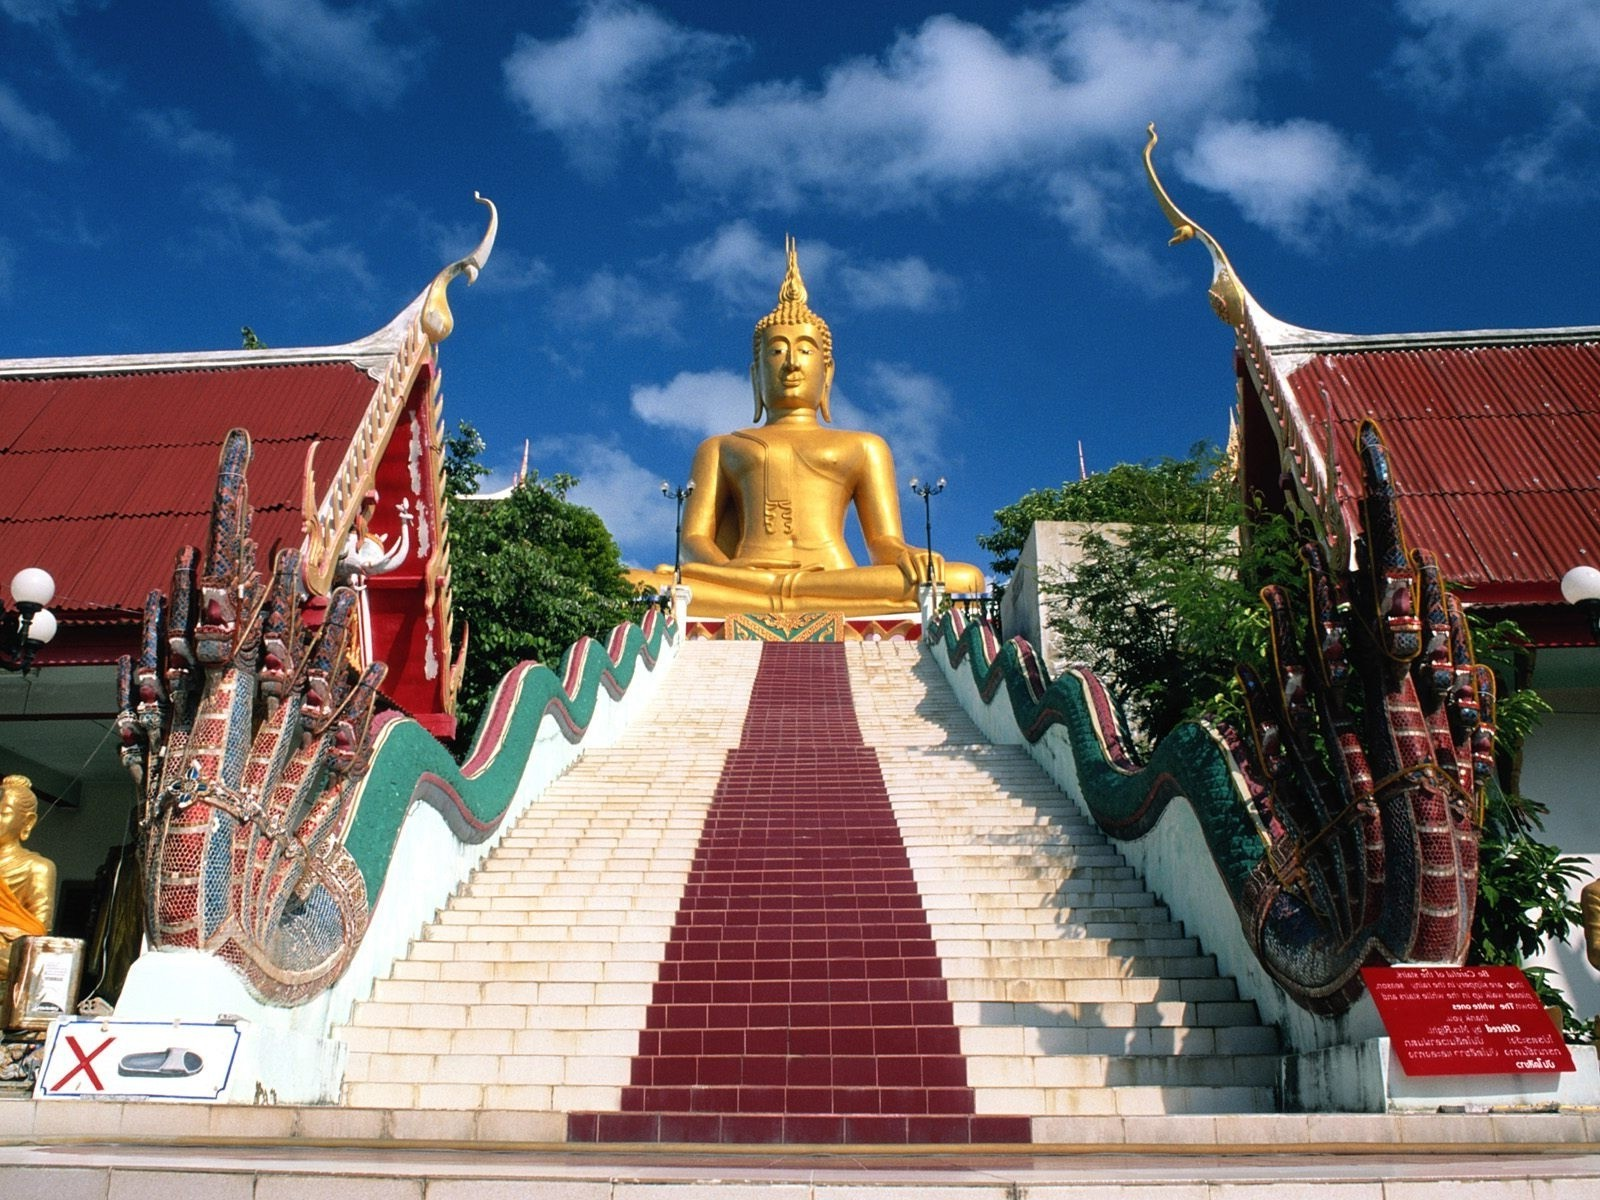 Big Buddha statue on the island of Samui, Thailand